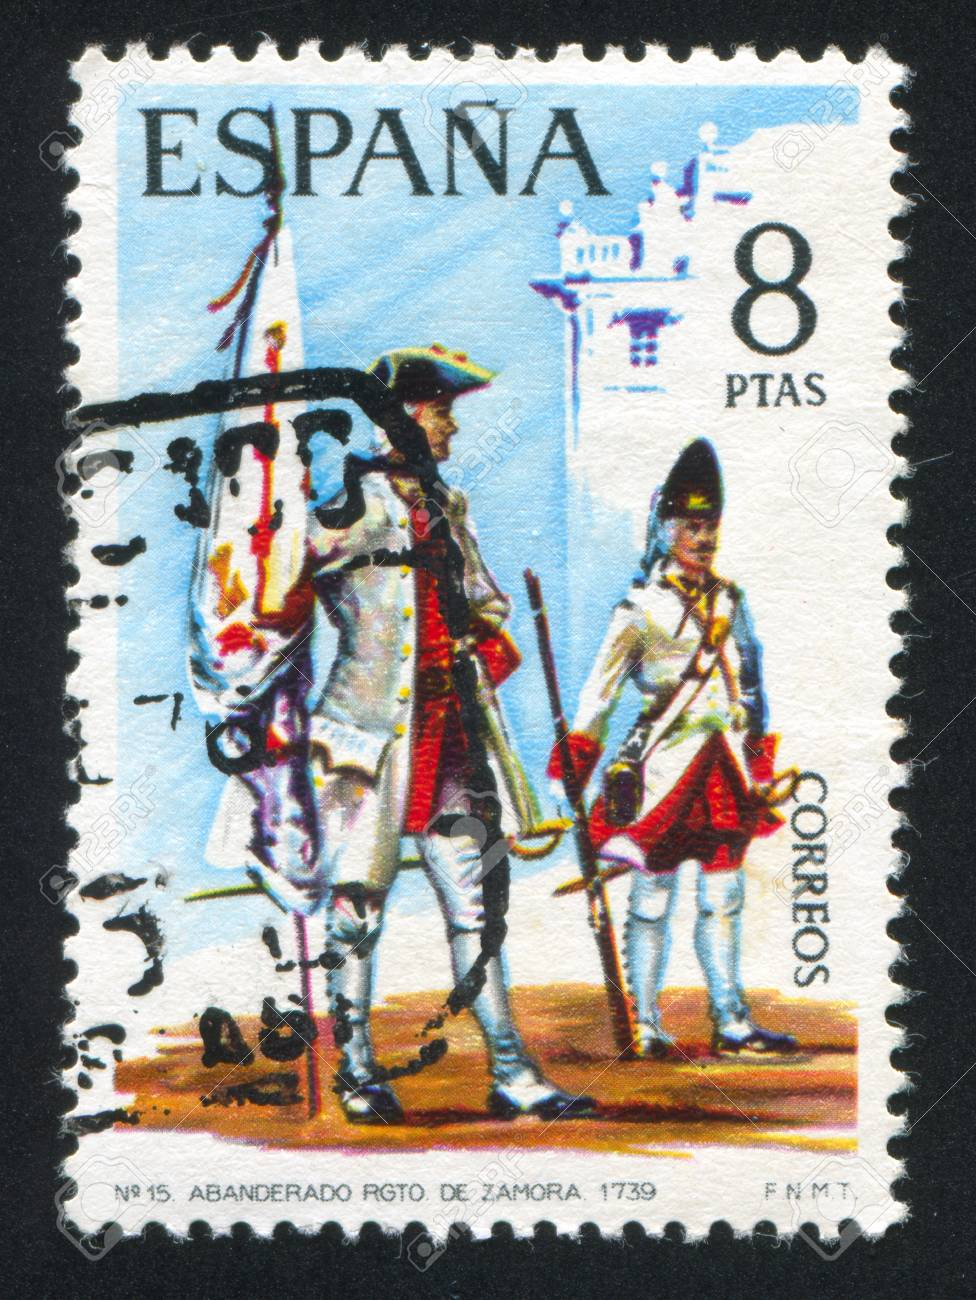 SPAIN - CIRCA 1974: stamp printed by Spain, shows Standard-bearer and soldier, circa 1974. Stock Photo - 15509000